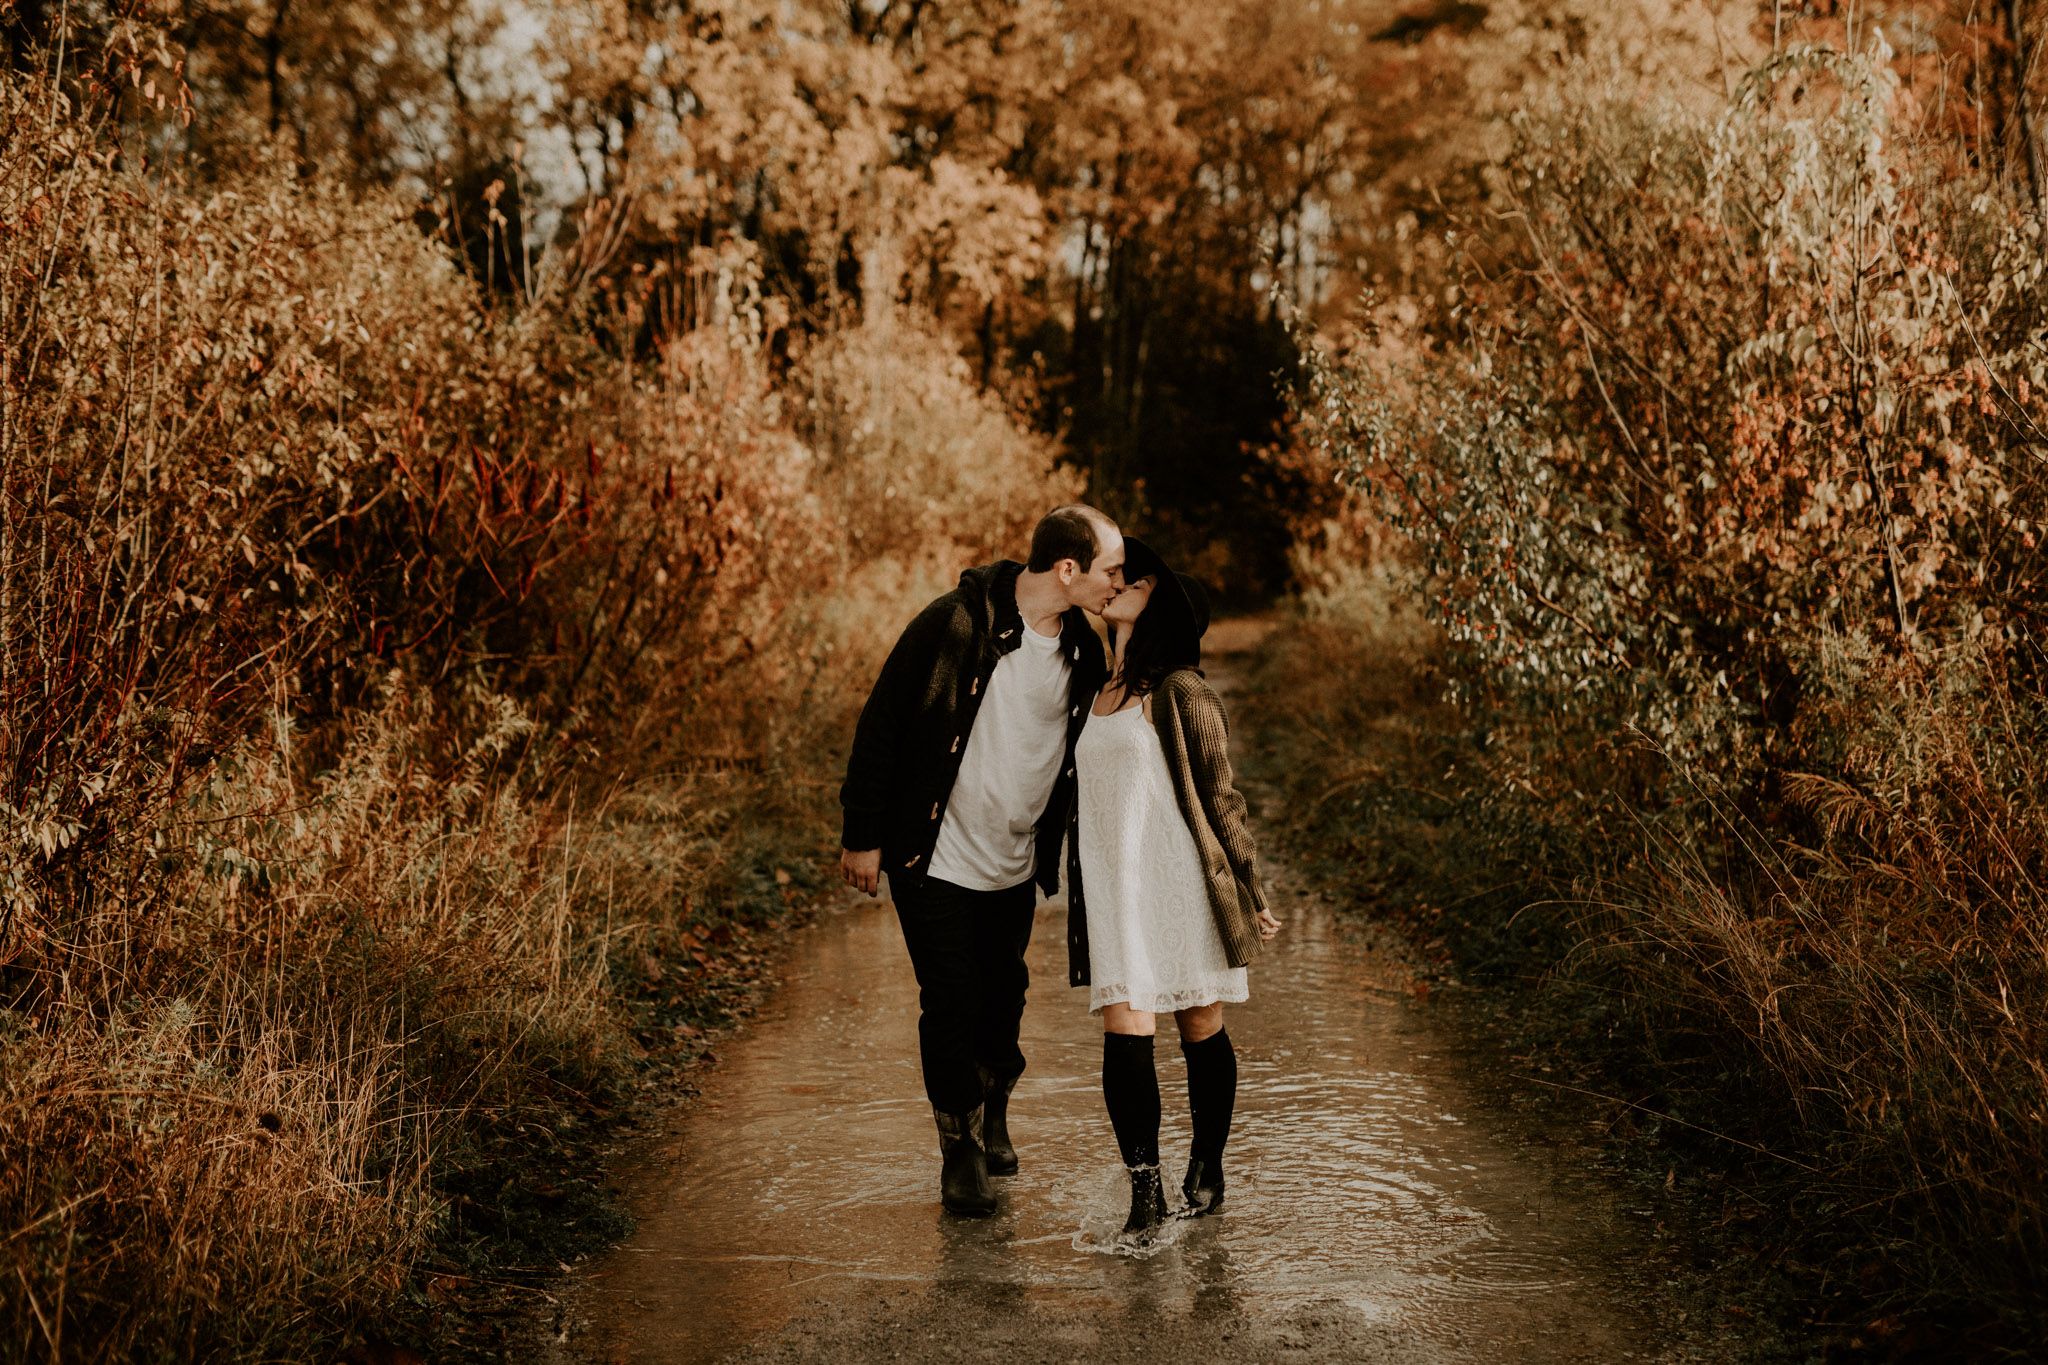 Fall Engagement Session in Toronto - rubber boots and puddles included